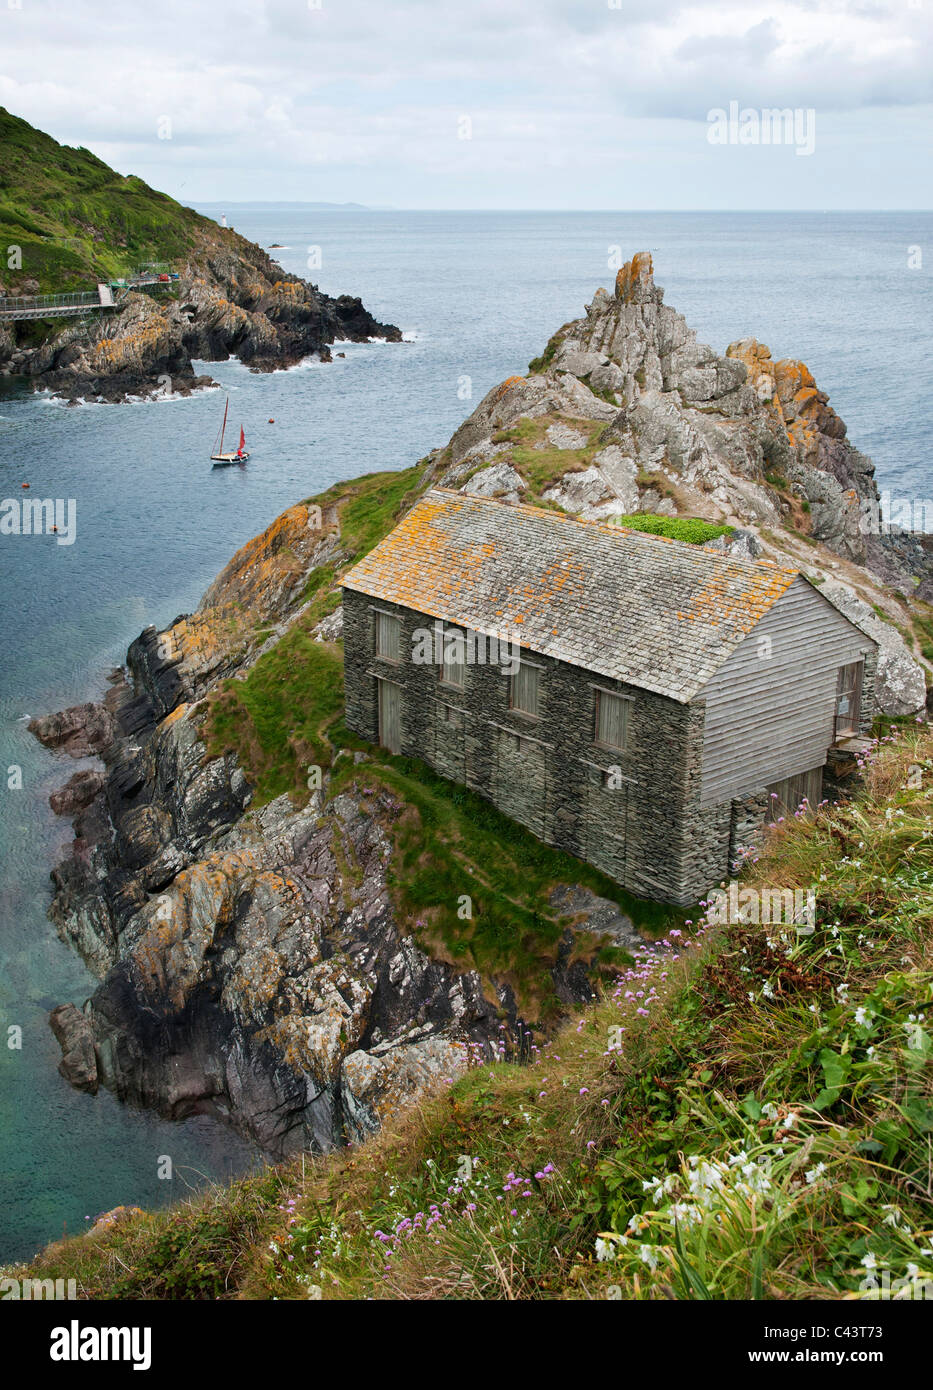 Old net loft at entrance to harbour of fishing village of Polperro, Cornwall UK - Stock Image